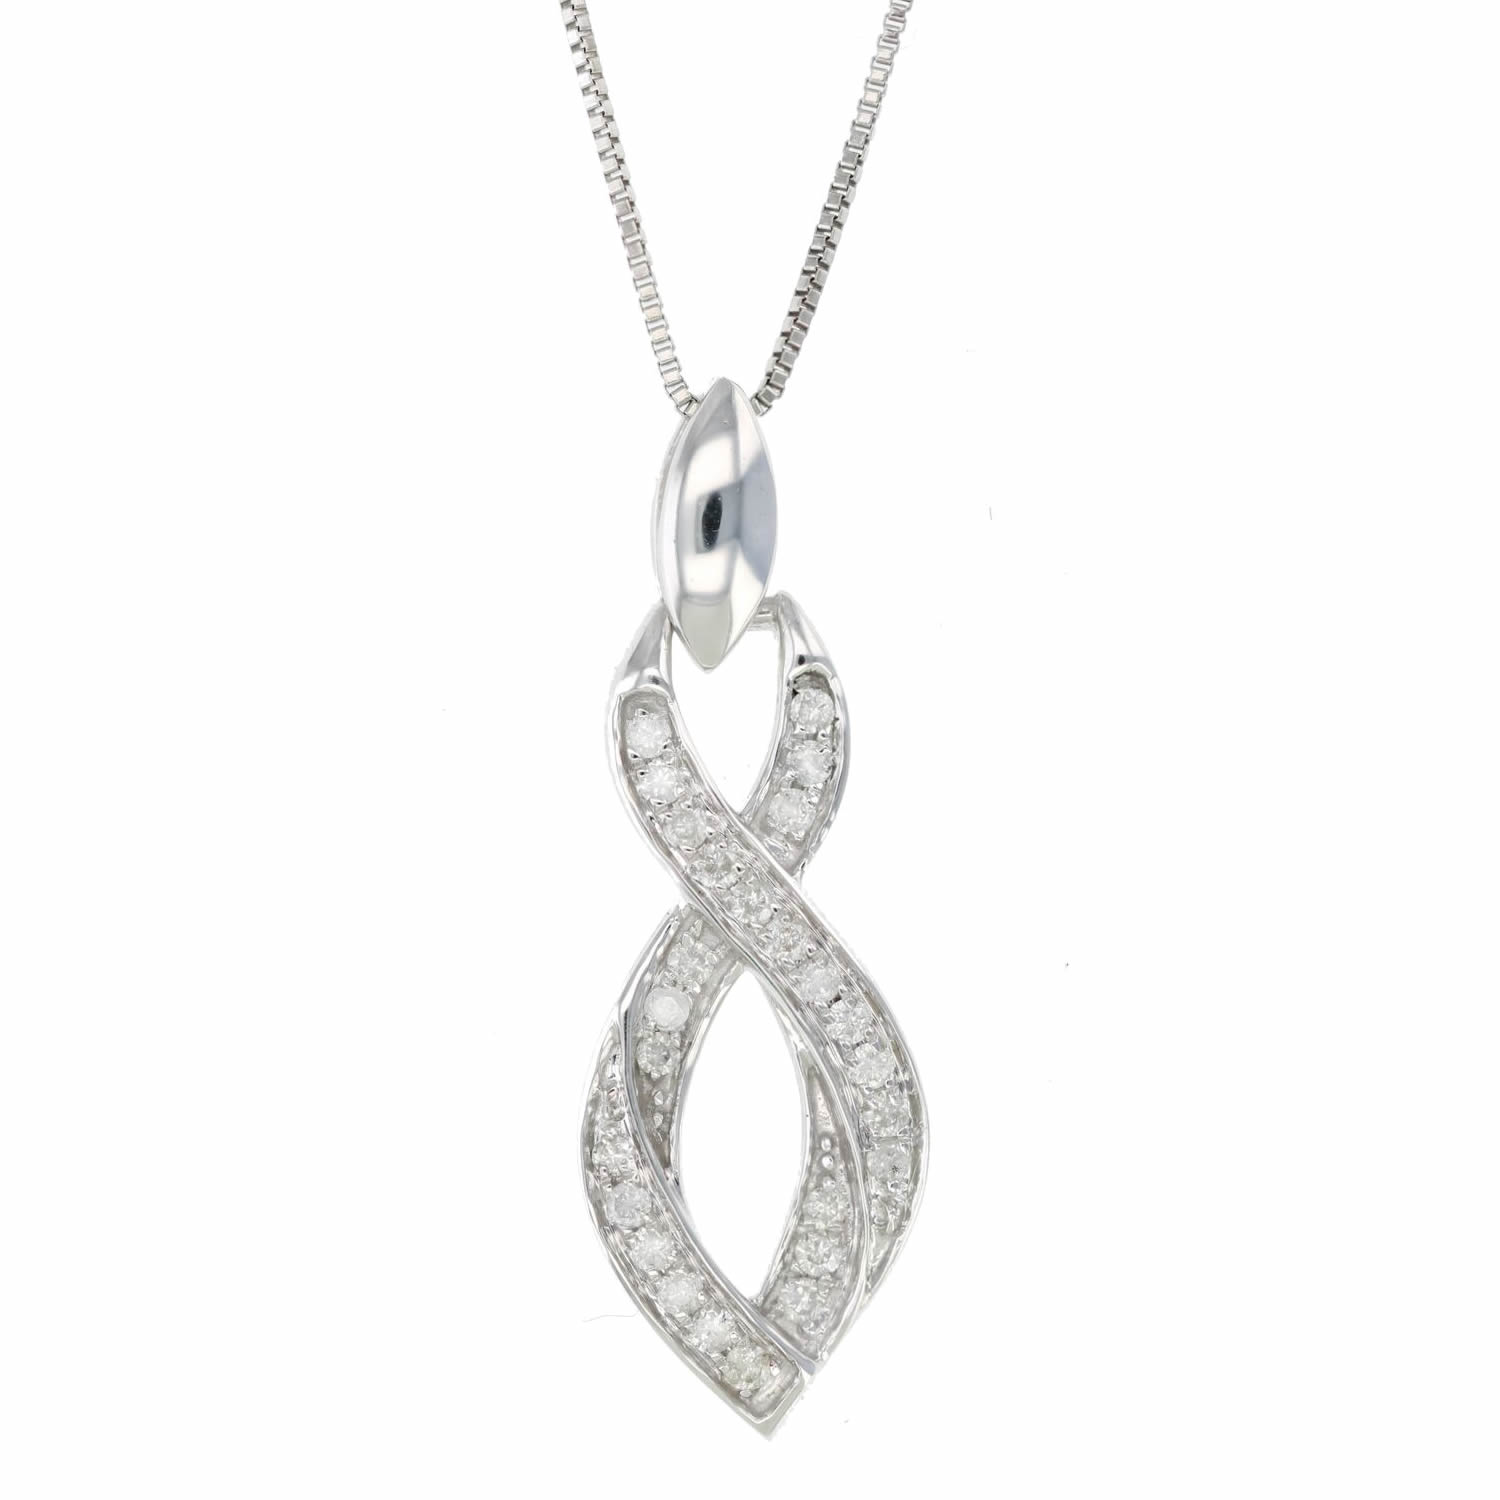 219105e60 Details about 1/5 cttw Diamond Geometrical Infinity Pendant 10K White Gold  with 18 Inch Chain